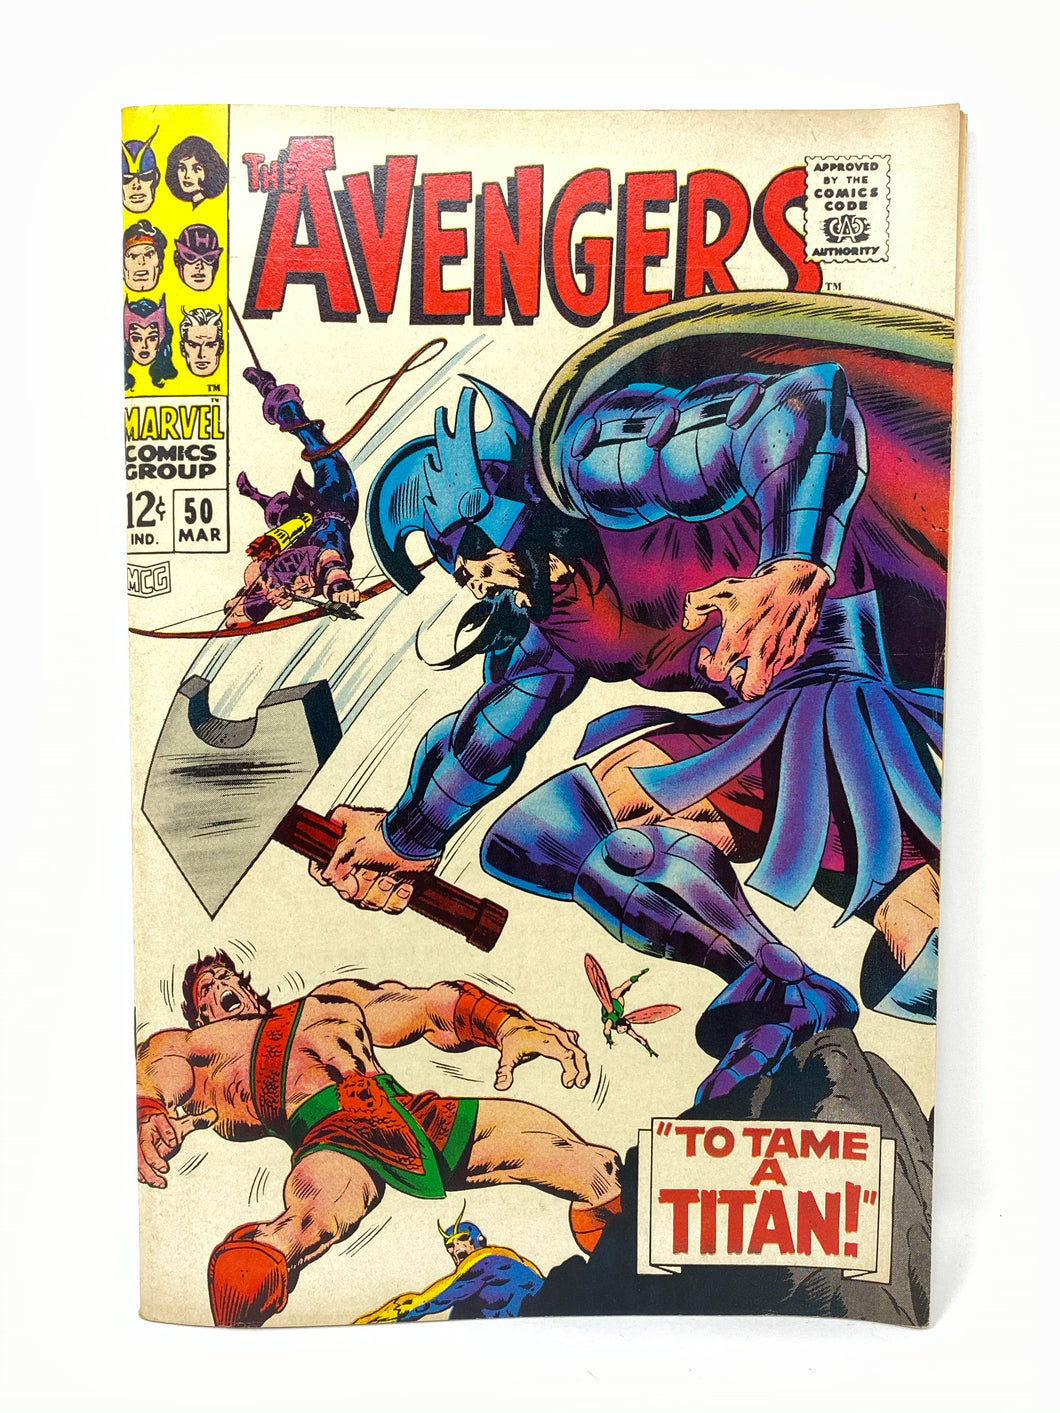 Marvel Comics Group The Avengers #50 w/ Hawkeye